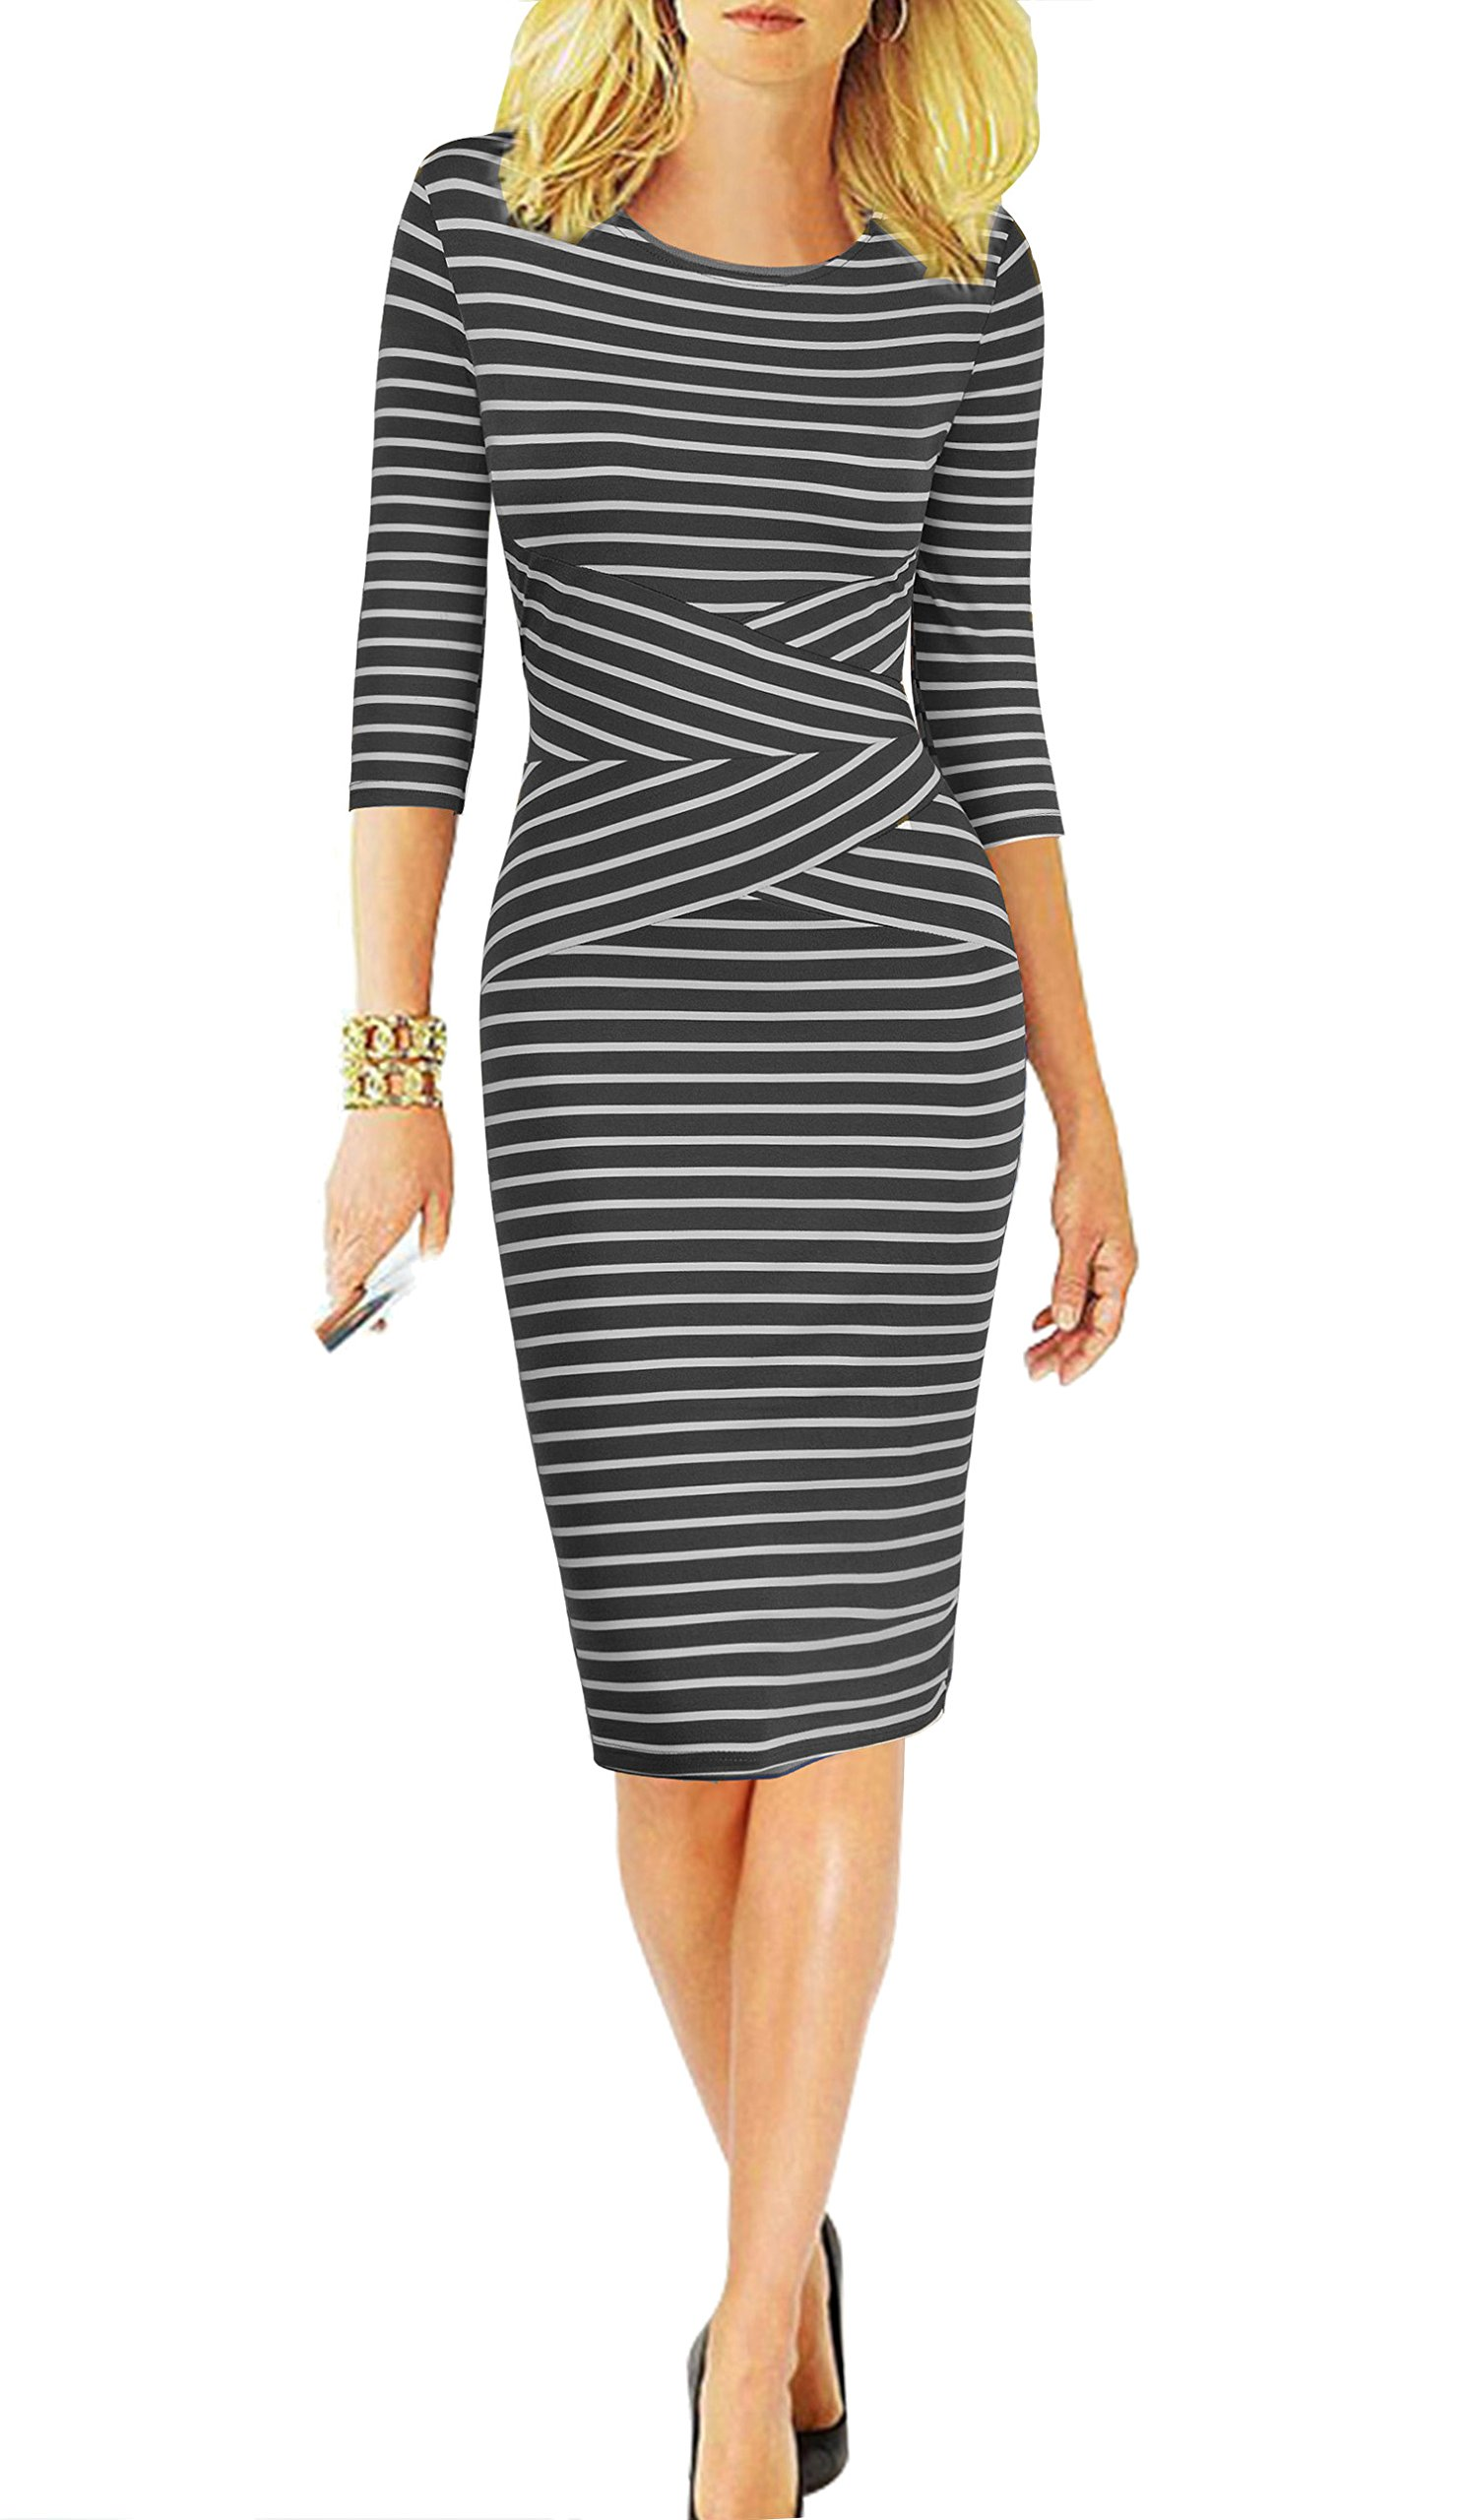 REPHYLLIS Women 3/4 Sleeve Striped Wear to Work Business Cocktail Party Summer Pencil Dress Black XL